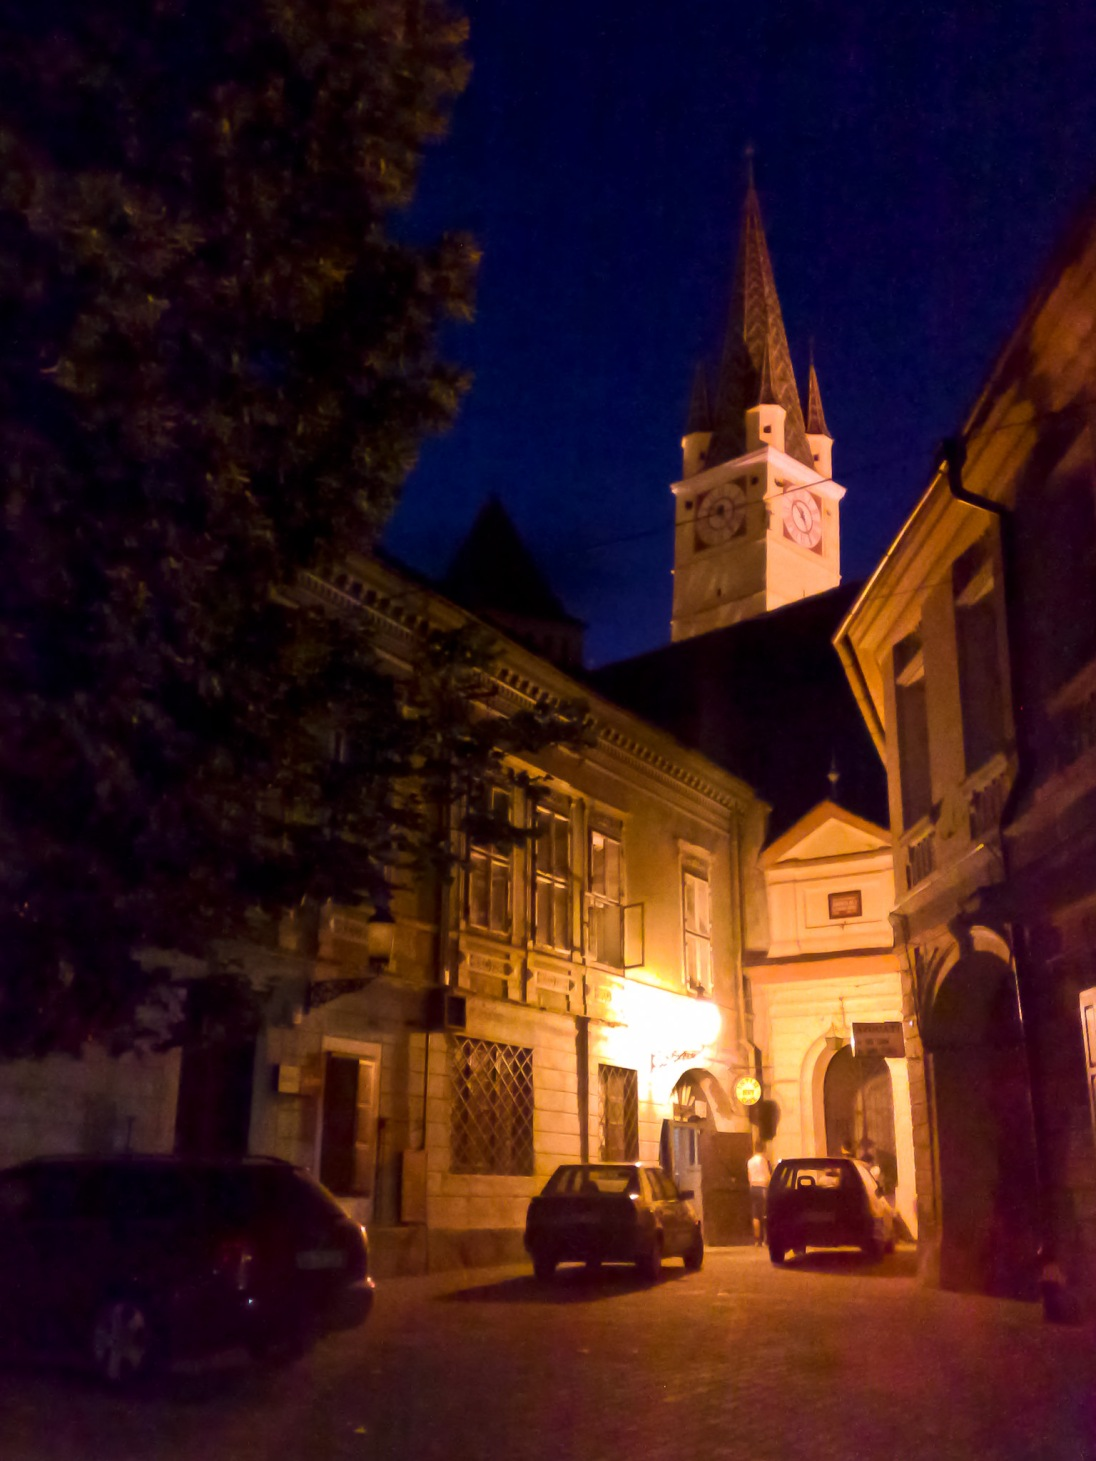 Walking in the city of Medias, Romania, on a clear summer night. The city's main clock tower is visible above the rooflines of the buildings in the foreground.